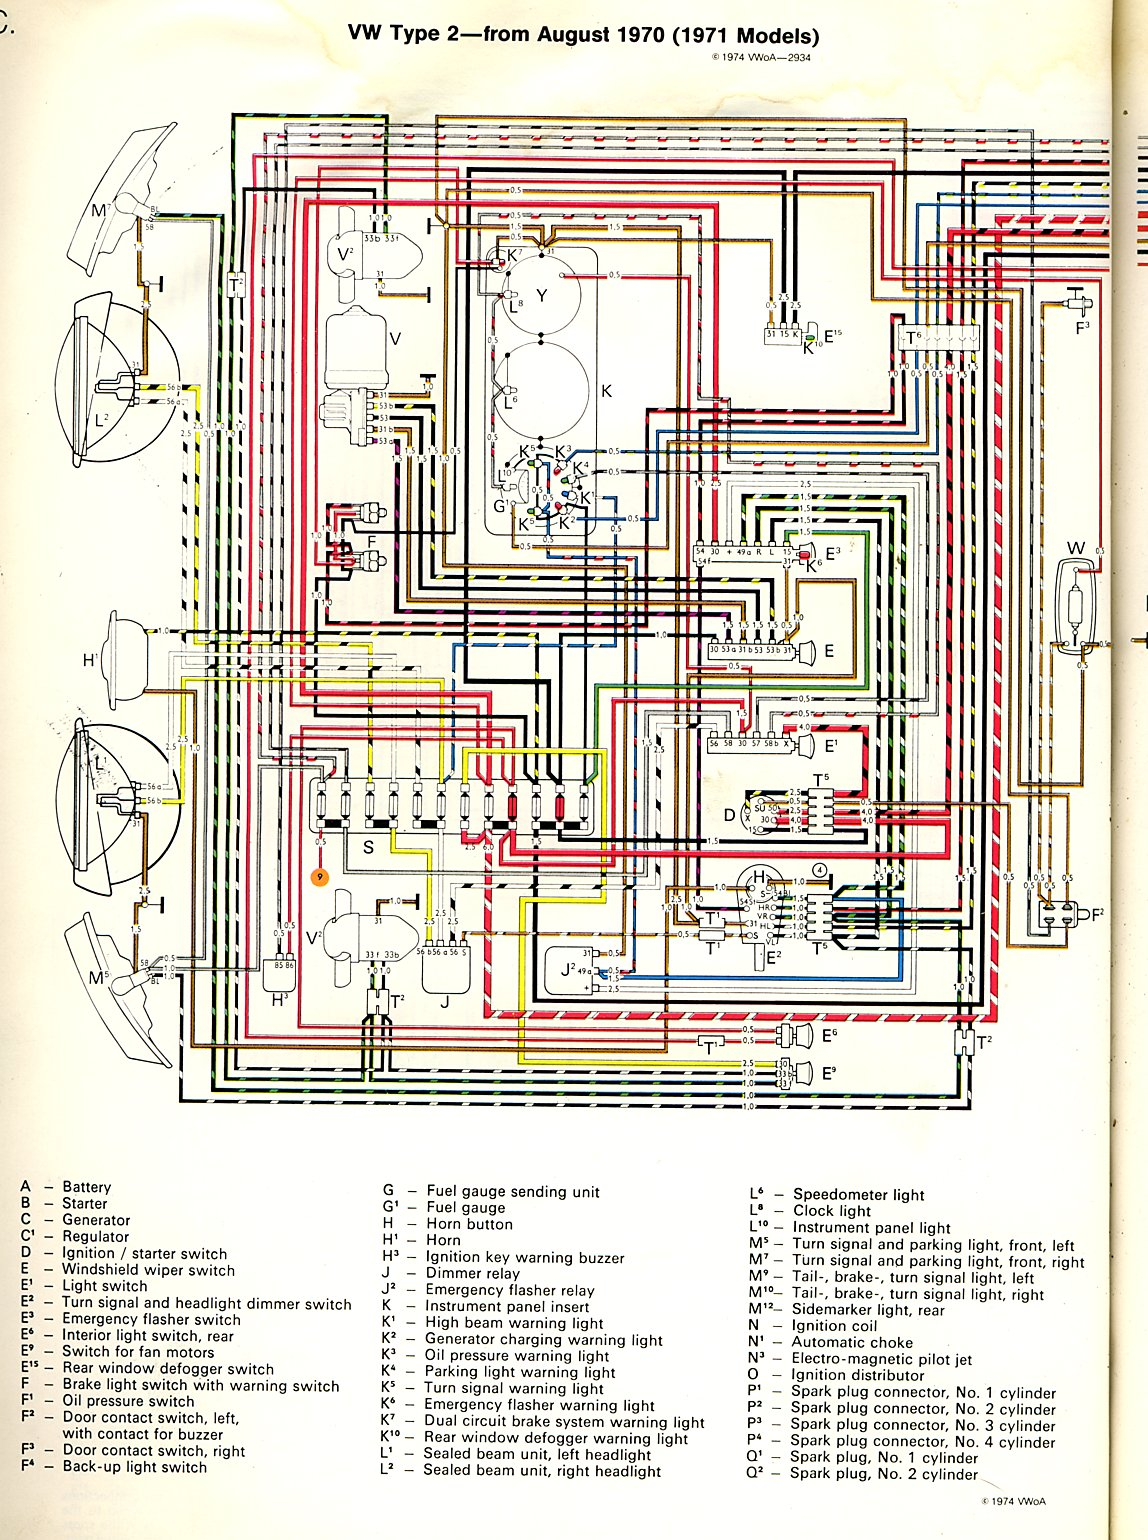 baybus_71a 1971 corvette wiring diagram 1981 corvette stereo wiring diagram 1970 corvette wiring diagram at bayanpartner.co